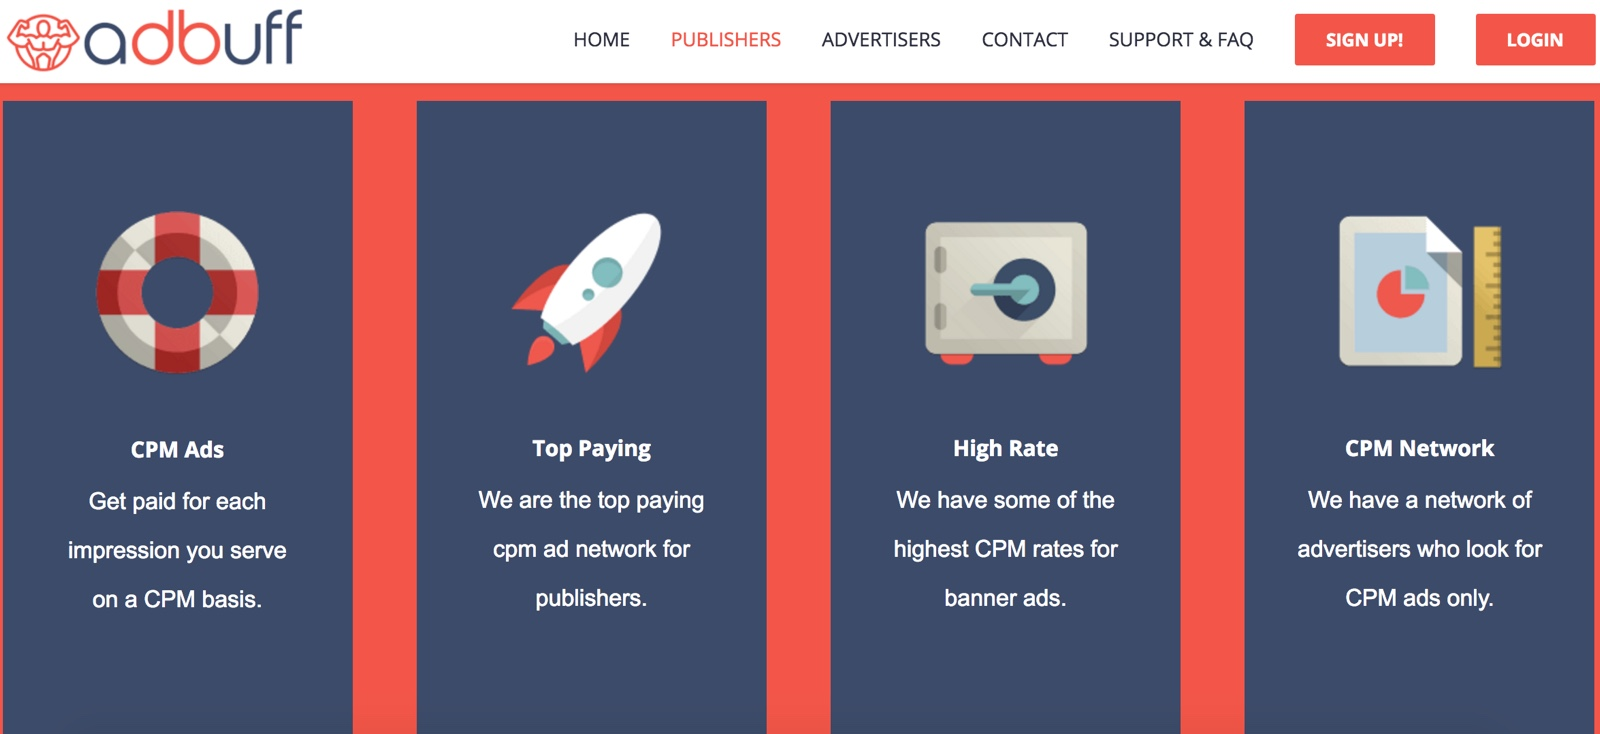 adbuff review cpm ad network for publishers and advertisers